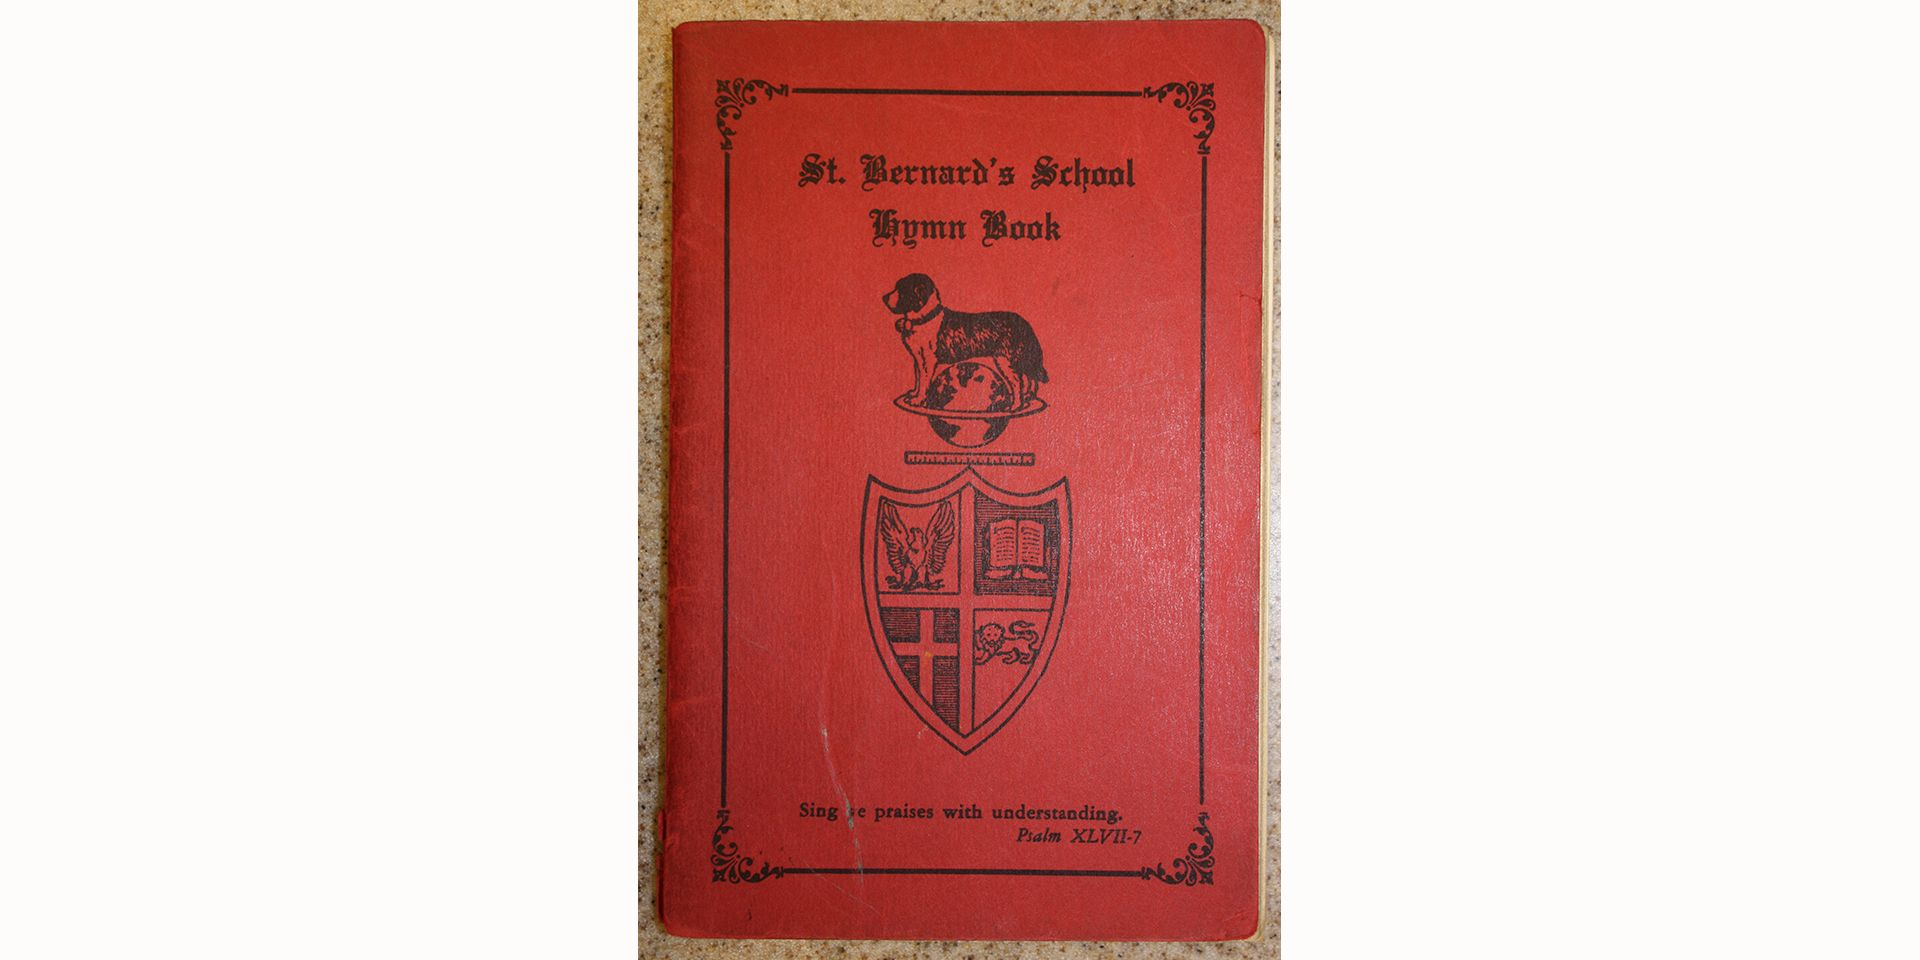 <center>Hymn Book, given to the boys upon entering the first grade</center>